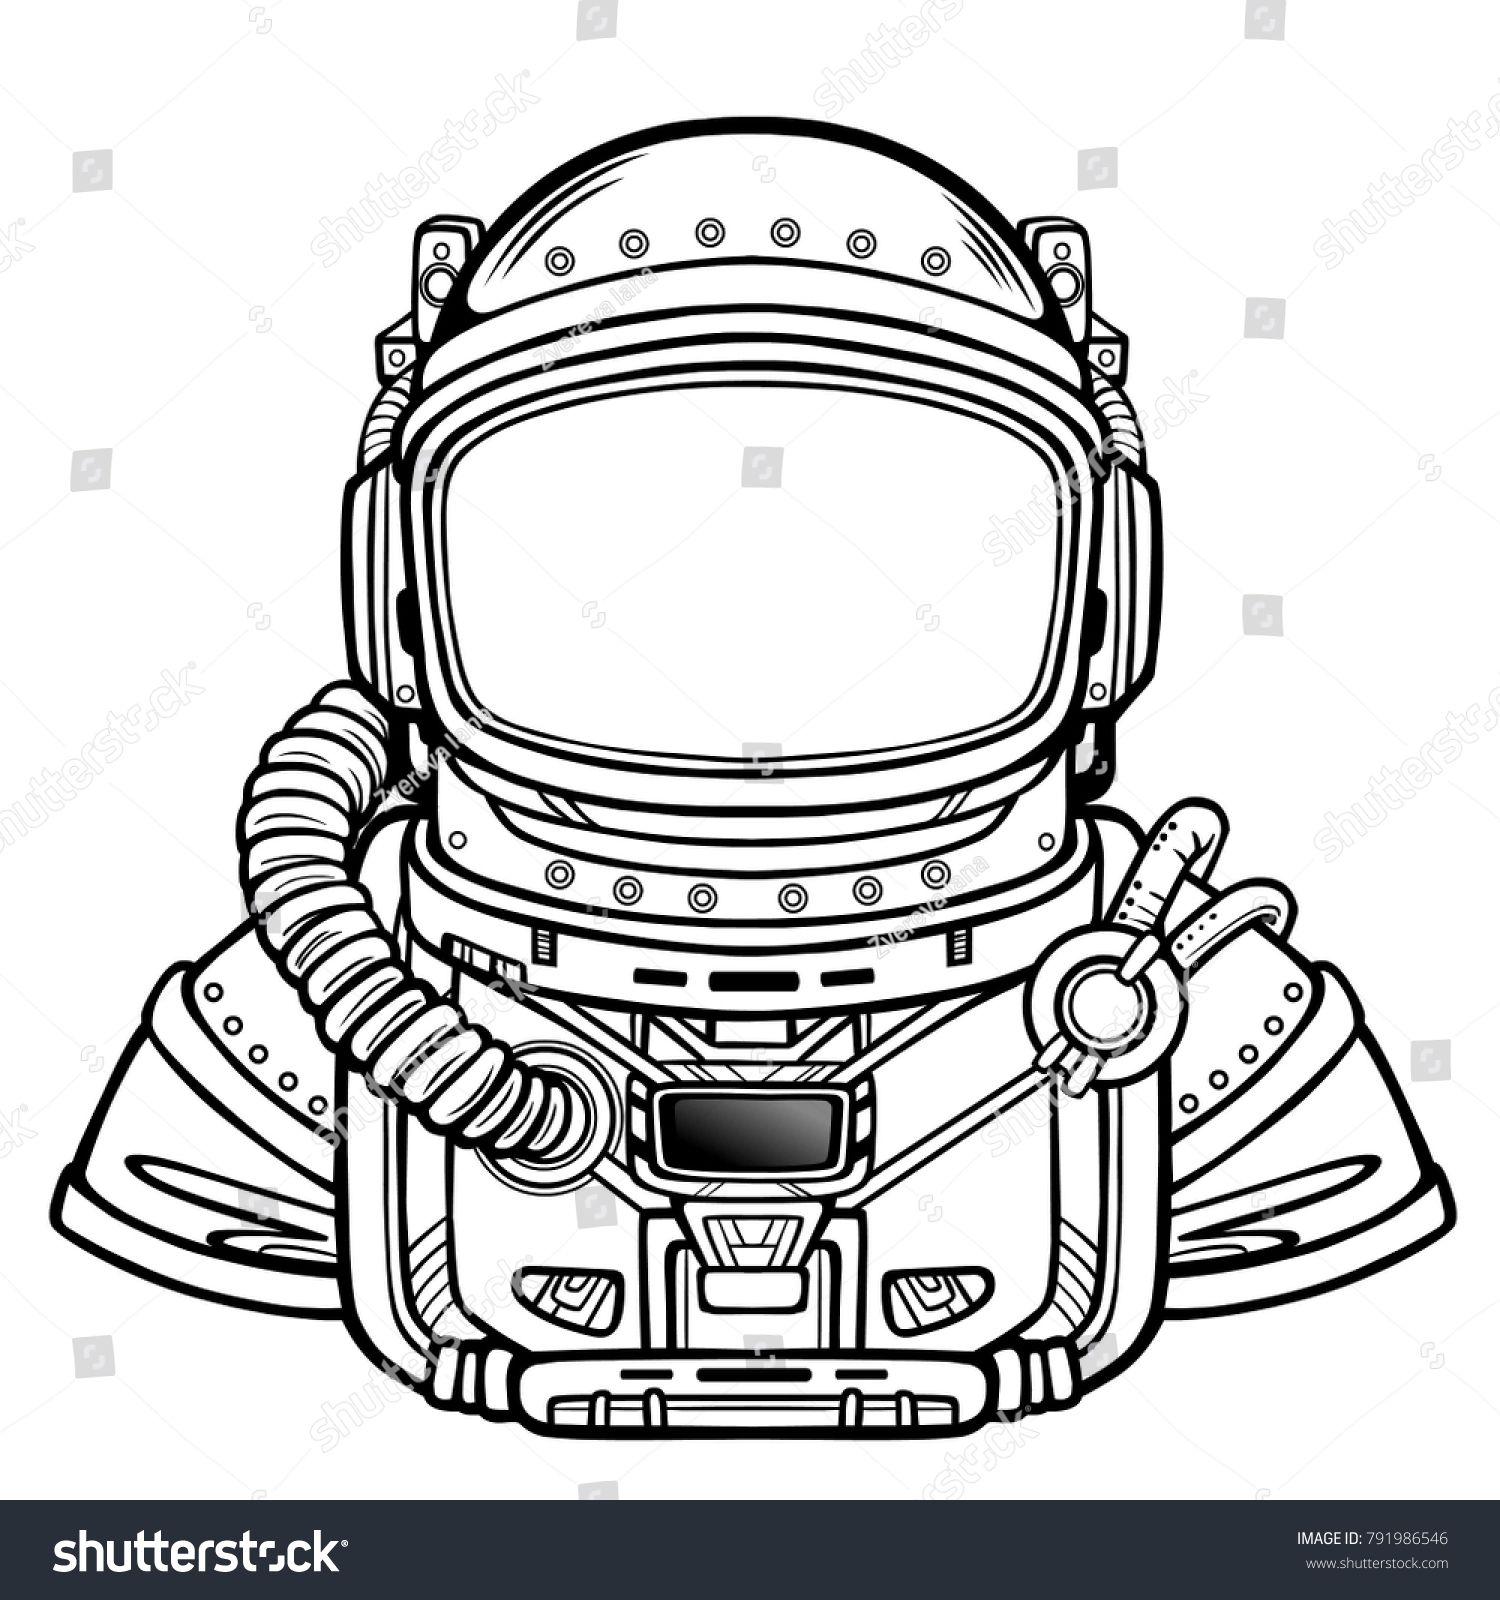 Animation Astronaut in a space suit. Vector illustration